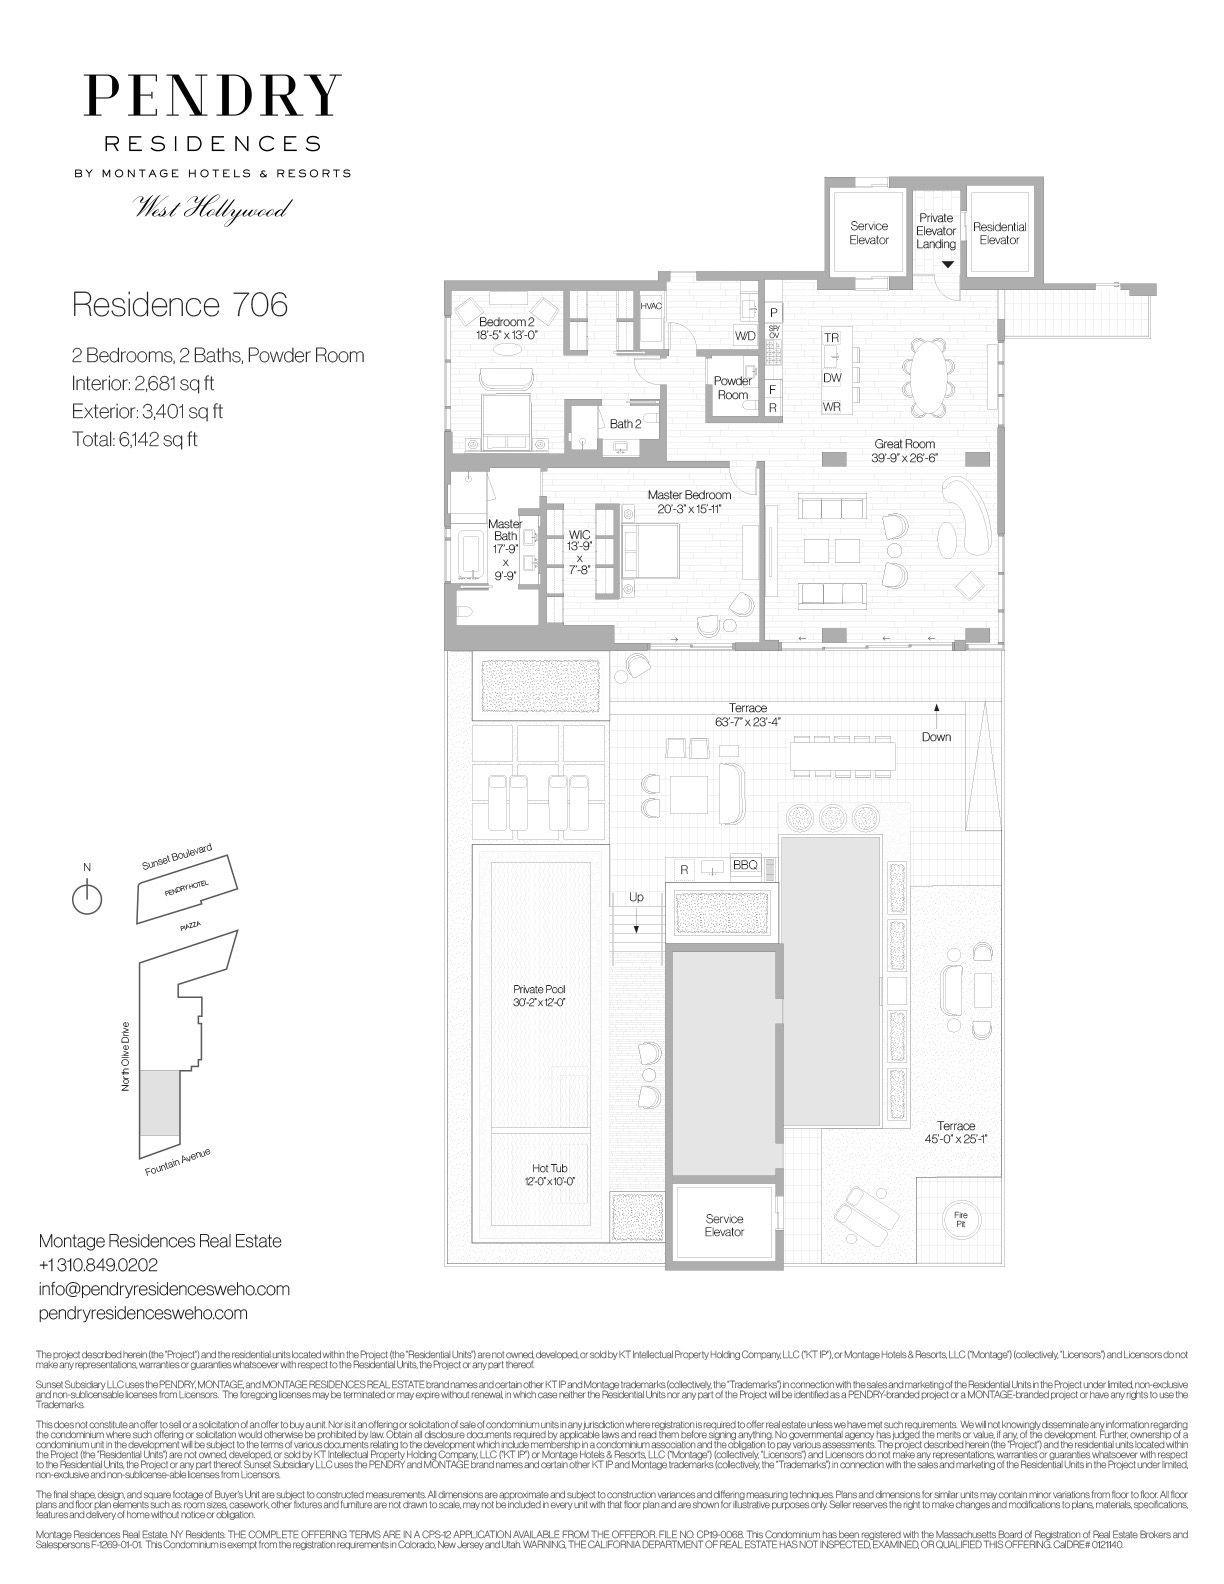 Pendry Residences West Hollywood Residence 706 In 2020 Floor Plans Apartment Floor Plan Single Story Homes